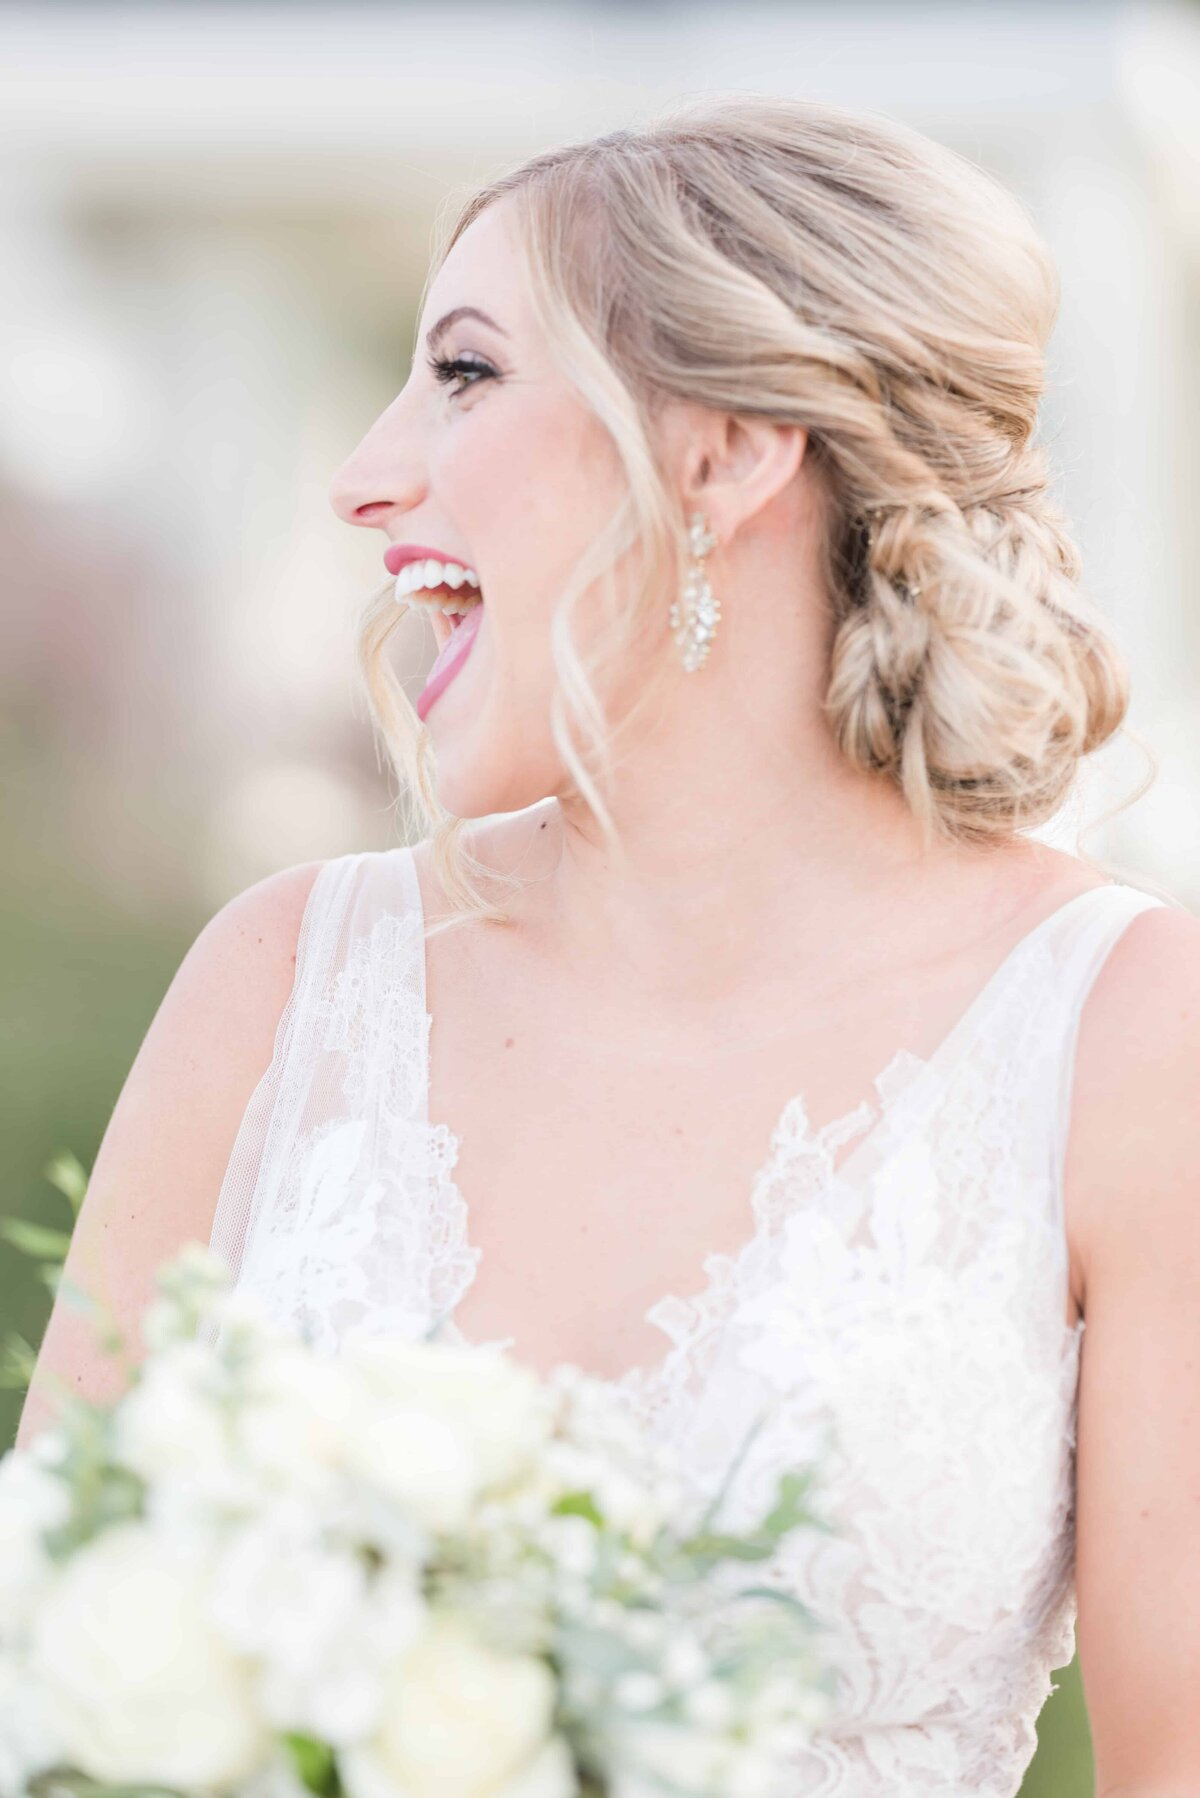 Bride laughing in bridal portrait.